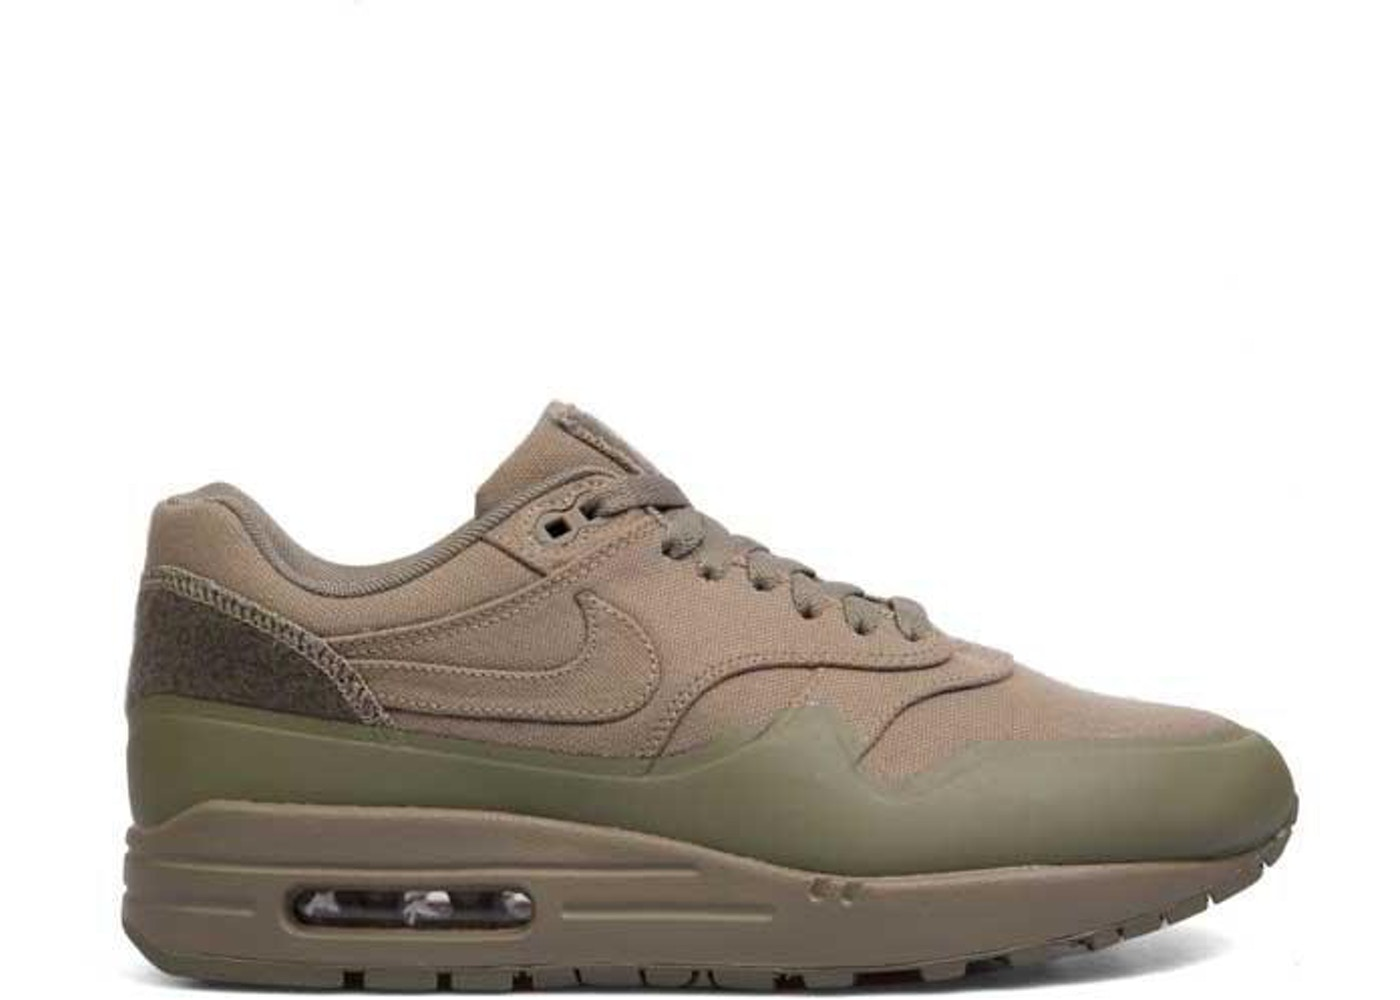 Nike Air Max 1 Patch Green 704901 300